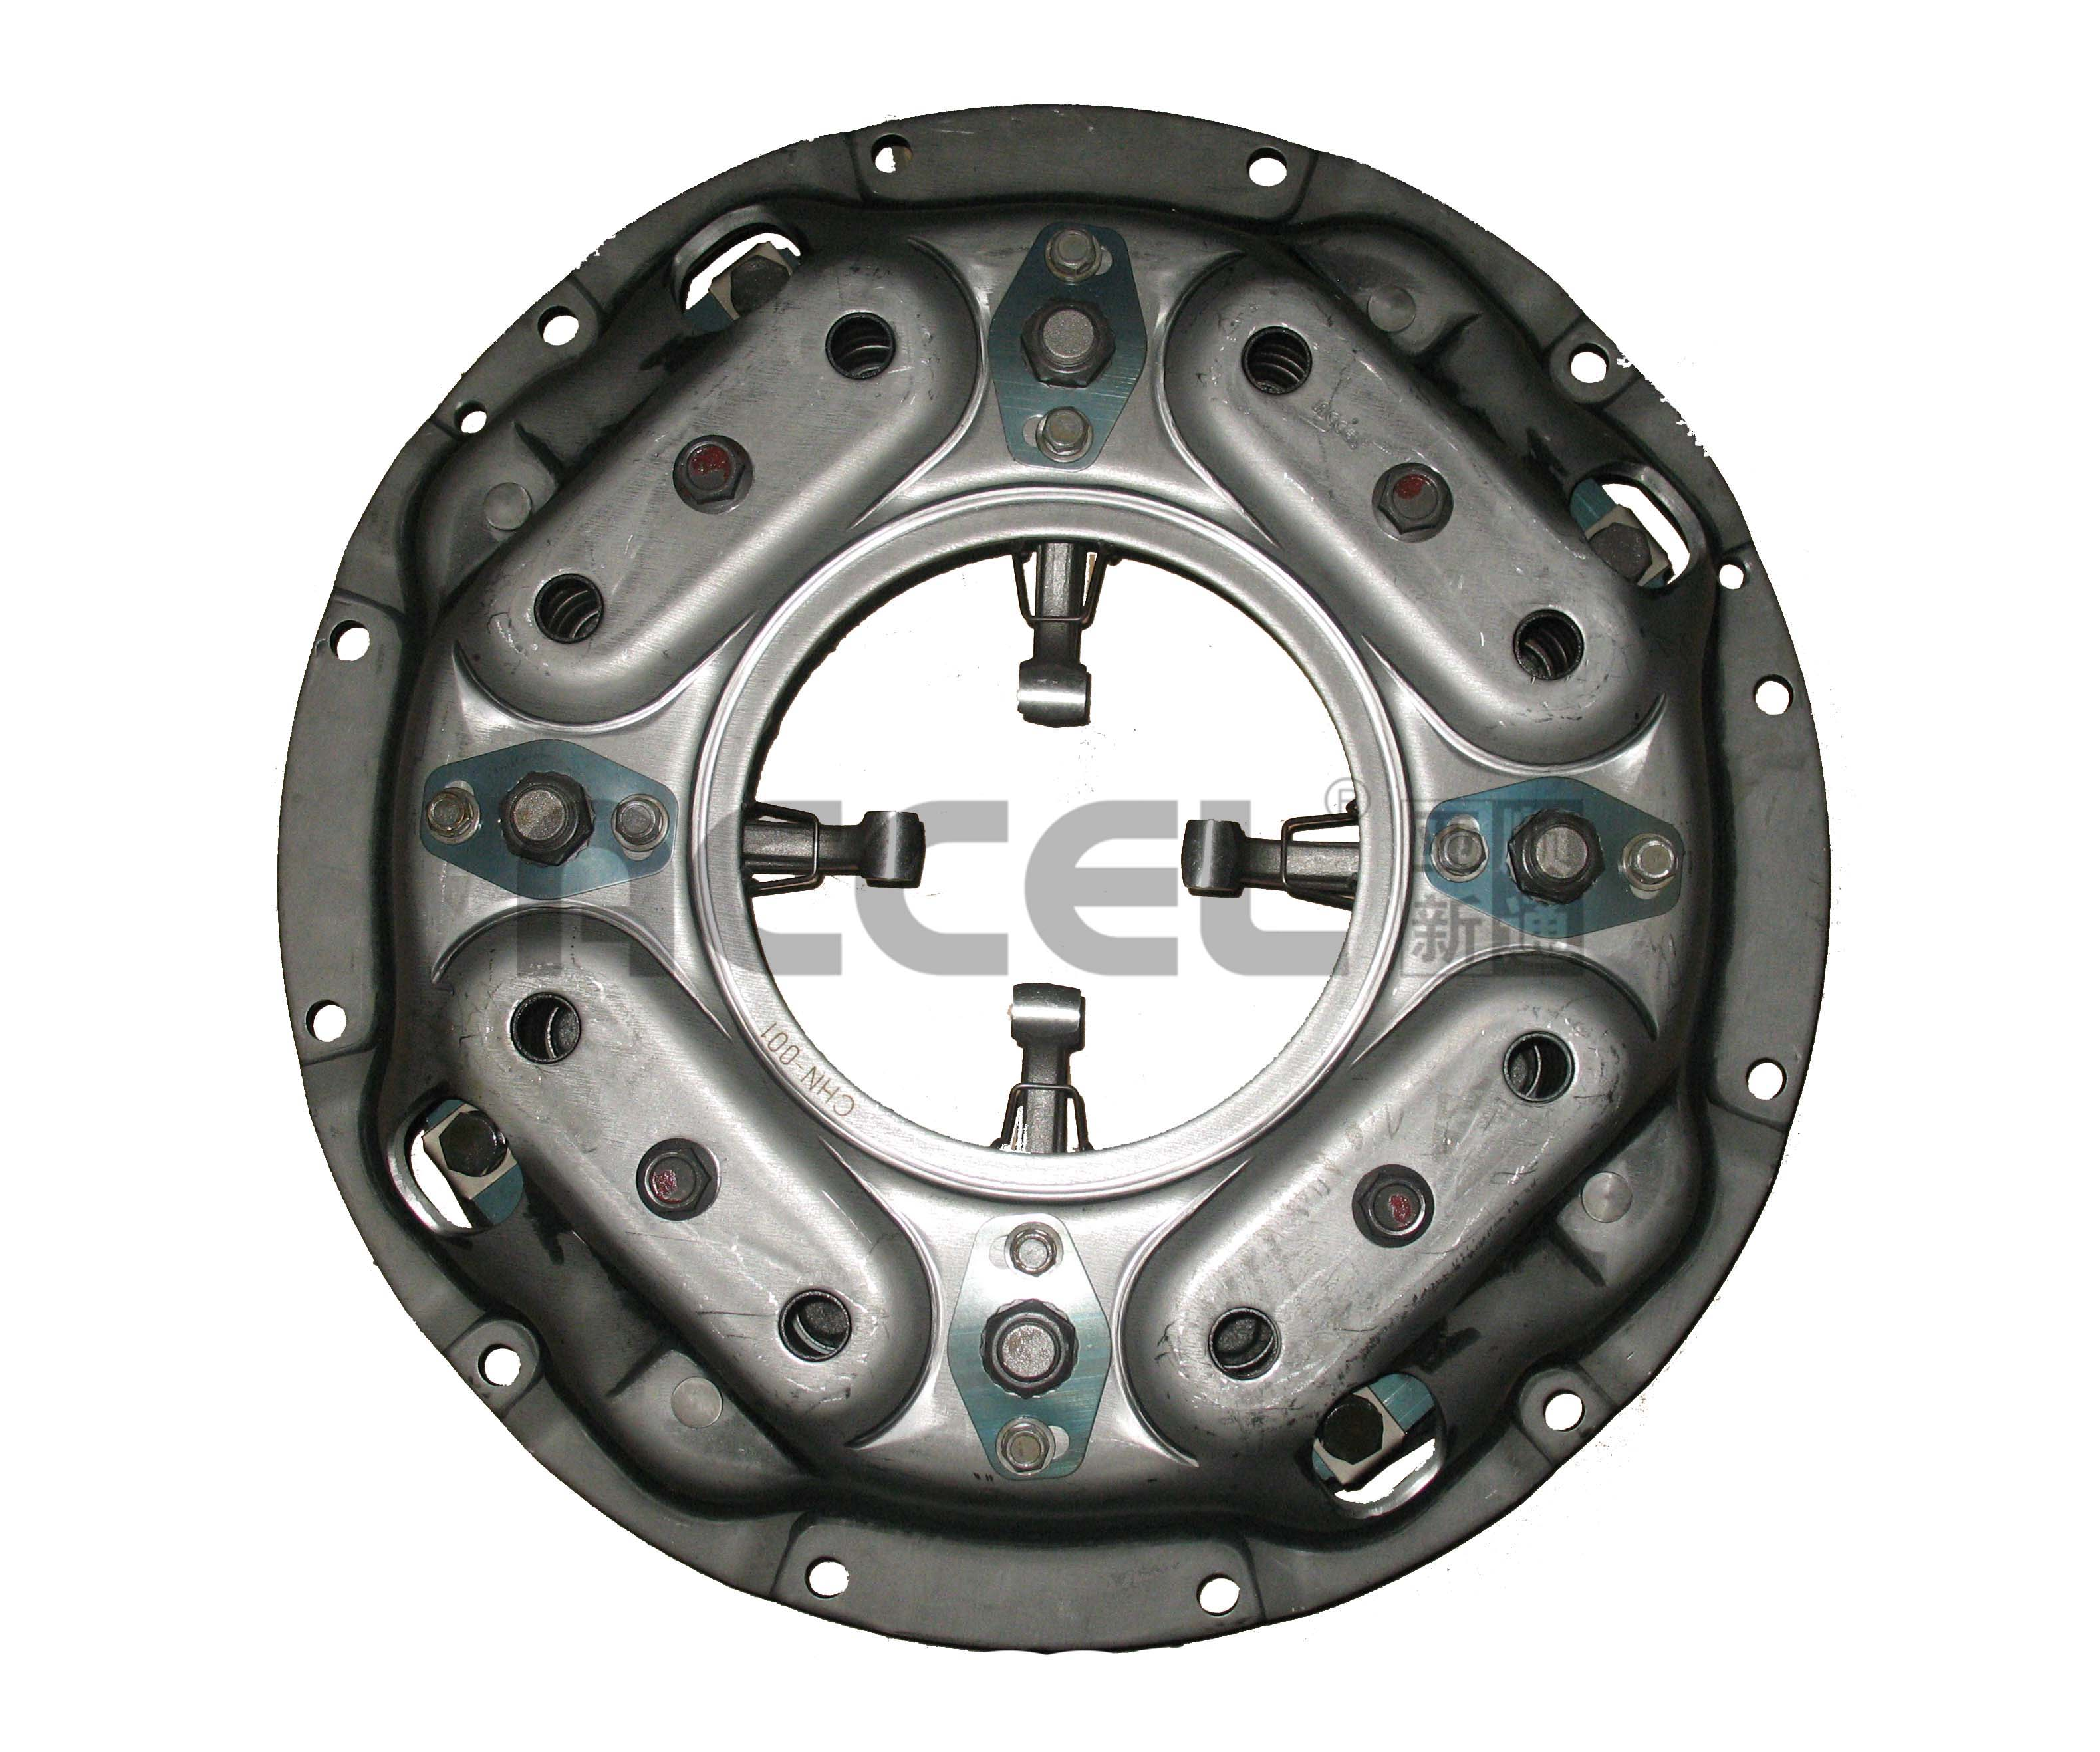 Clutch Cover/OE:HNC532/430*250*456/CHN-001/HINO/LY146/31210-2082